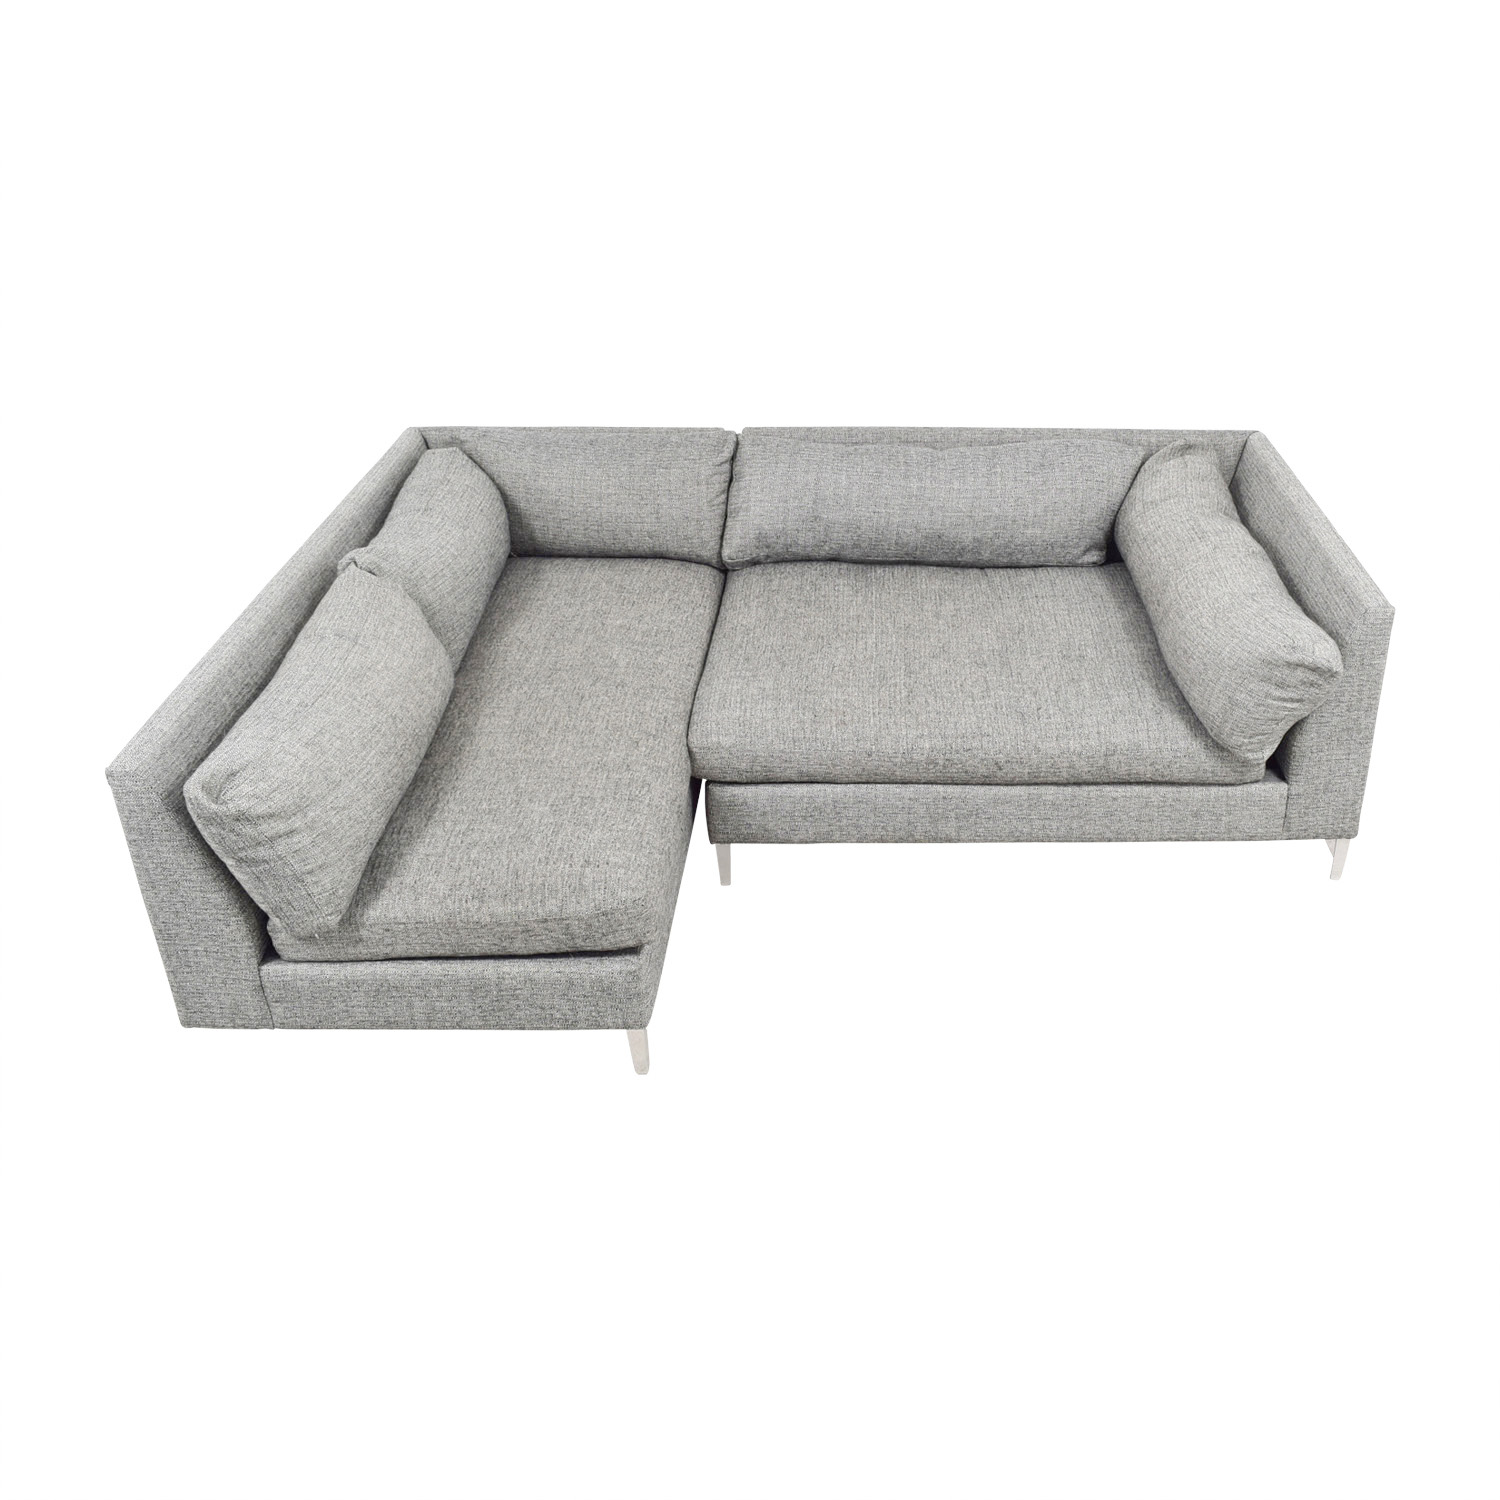 CB2 CB2 Decker Grey Sectional dimensions